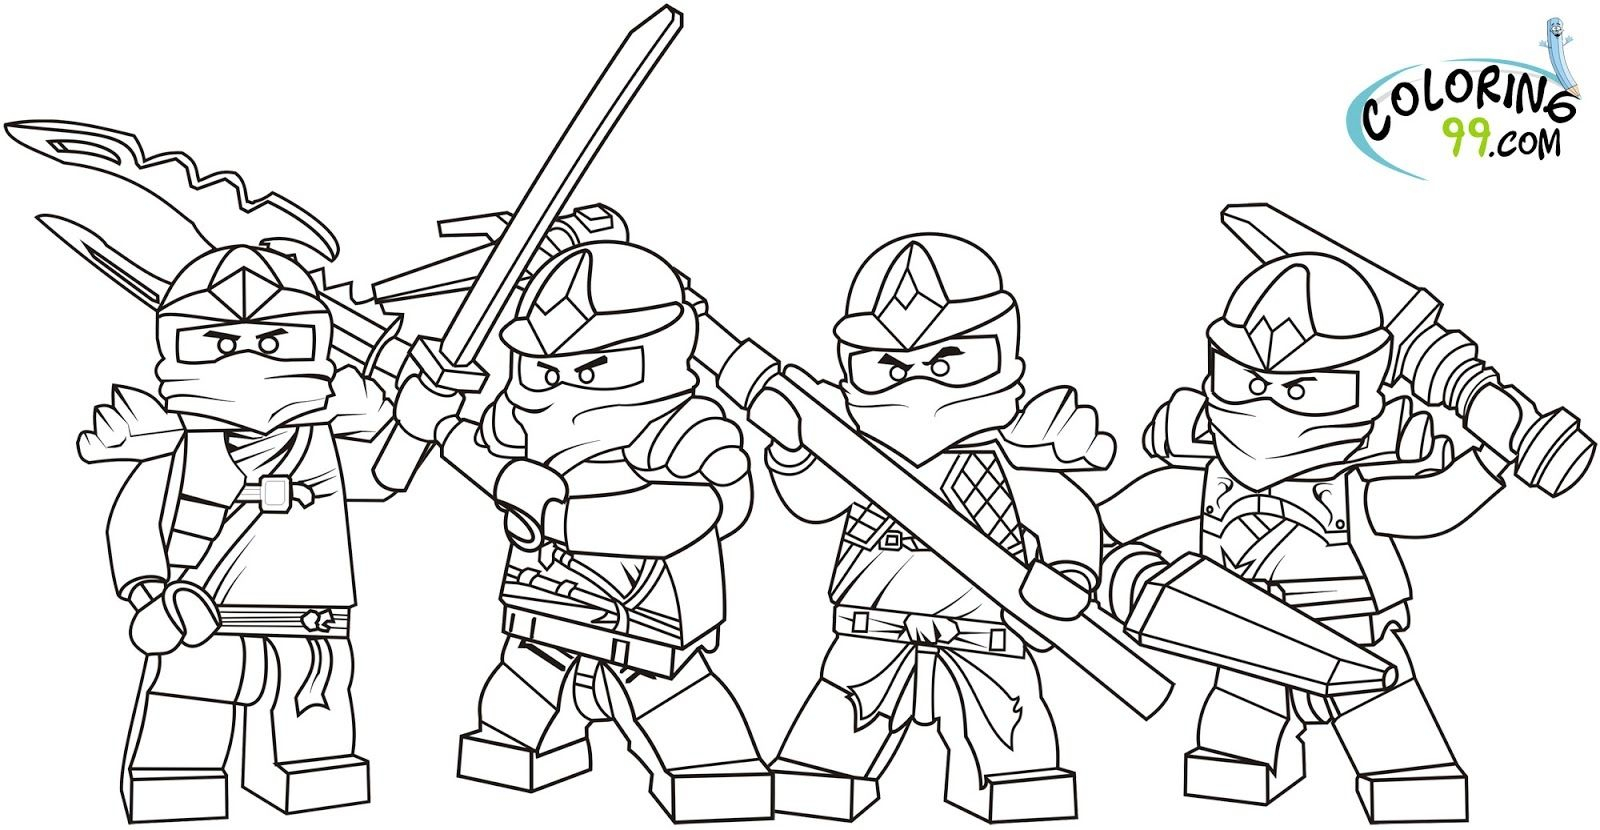 21+ Excellent Image of Ninja Coloring Pages